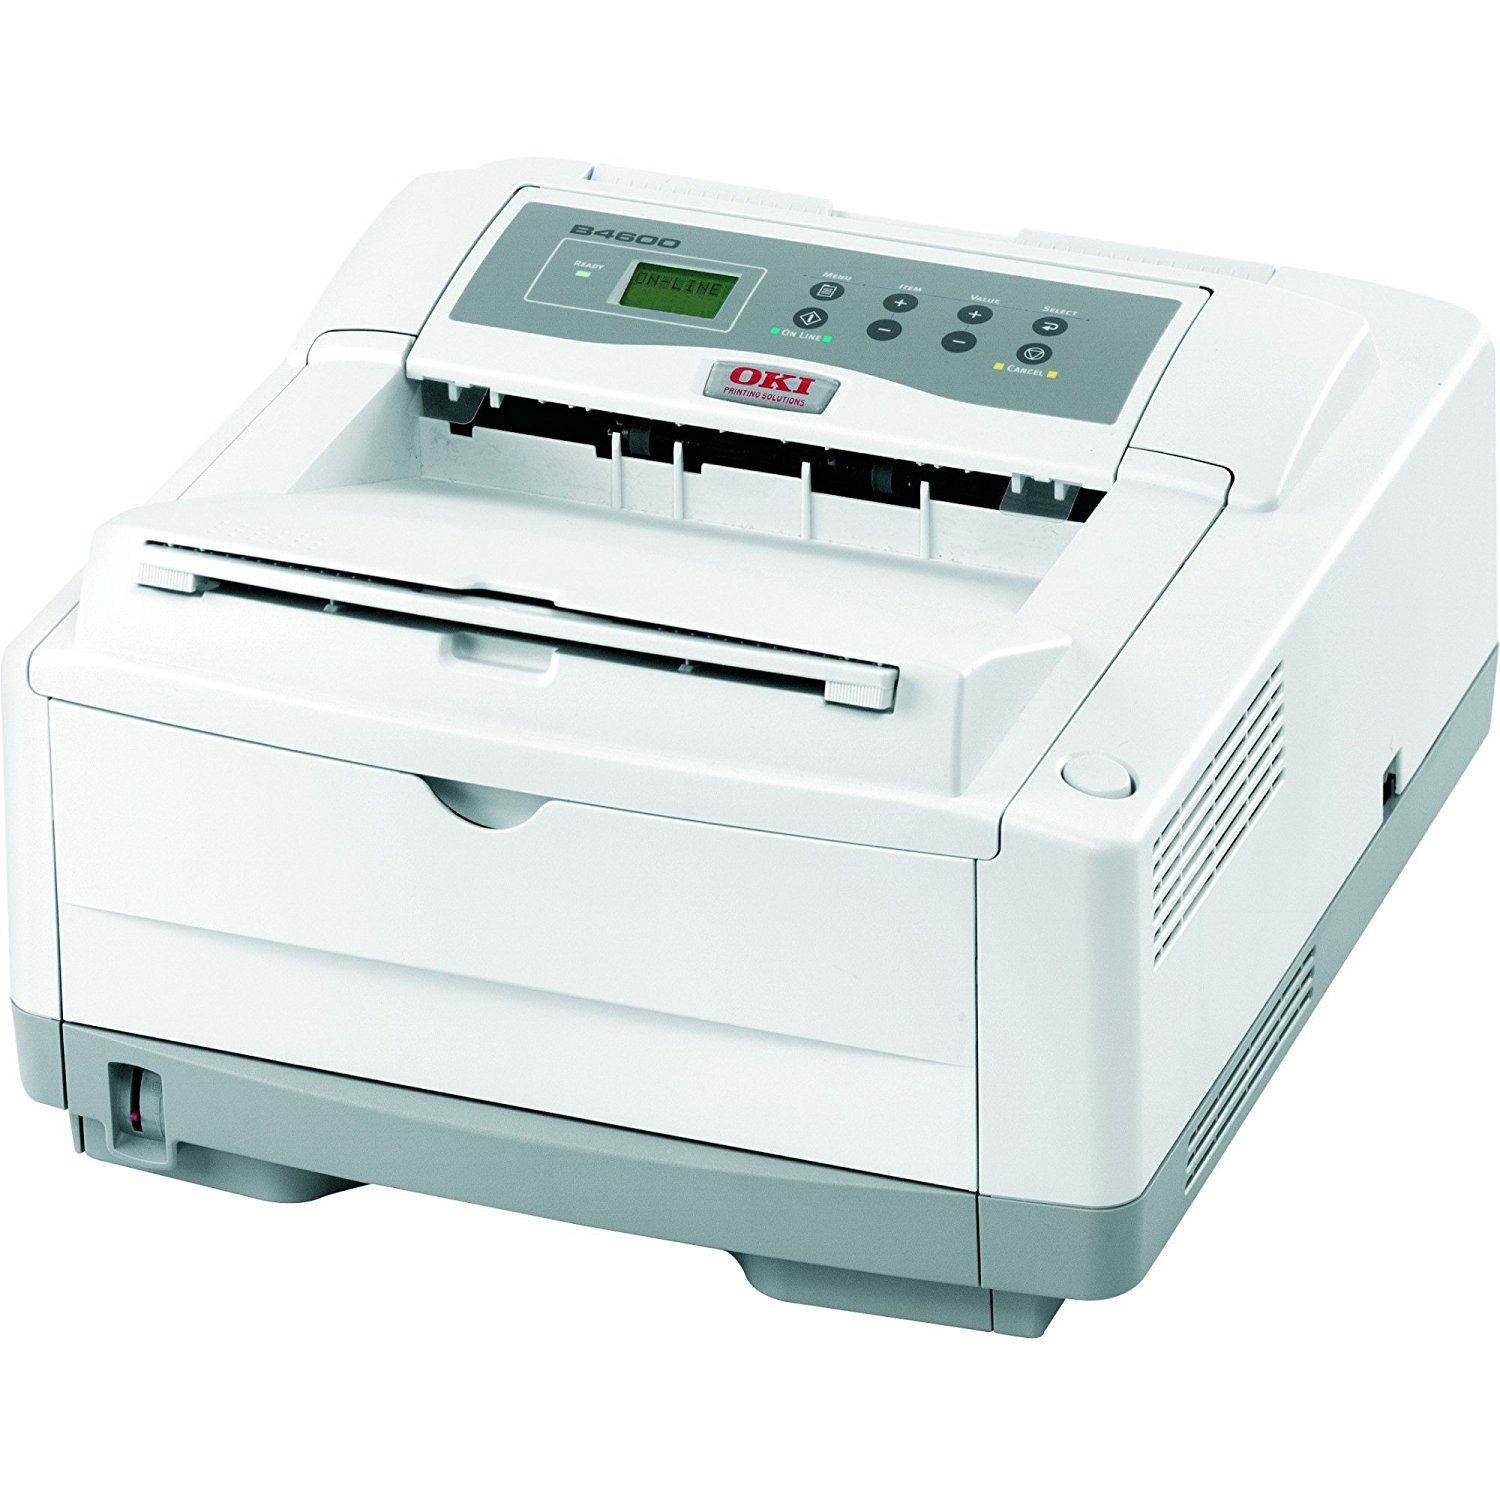 OKIDATA 62446601 – B4600 BLACK – MONO – LED – SINGLE FUNCTION – PRINTER – 27 PPM –